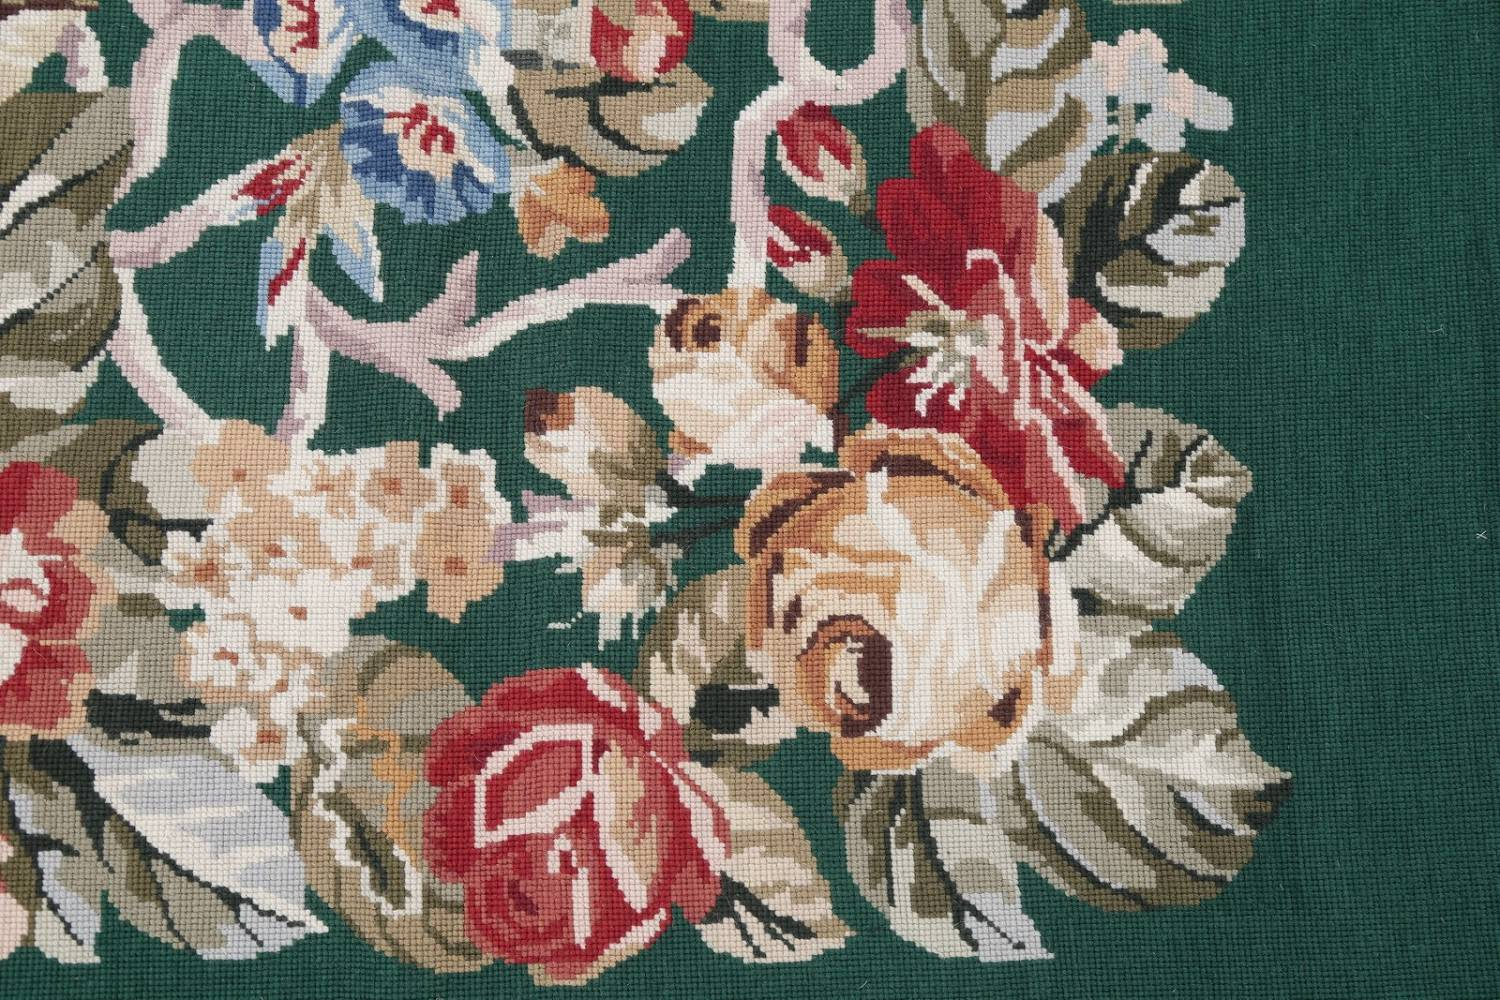 Floral Green Aubusson Chinese Oriental Hand-Woven Area Rug Wool 6x9 image 8